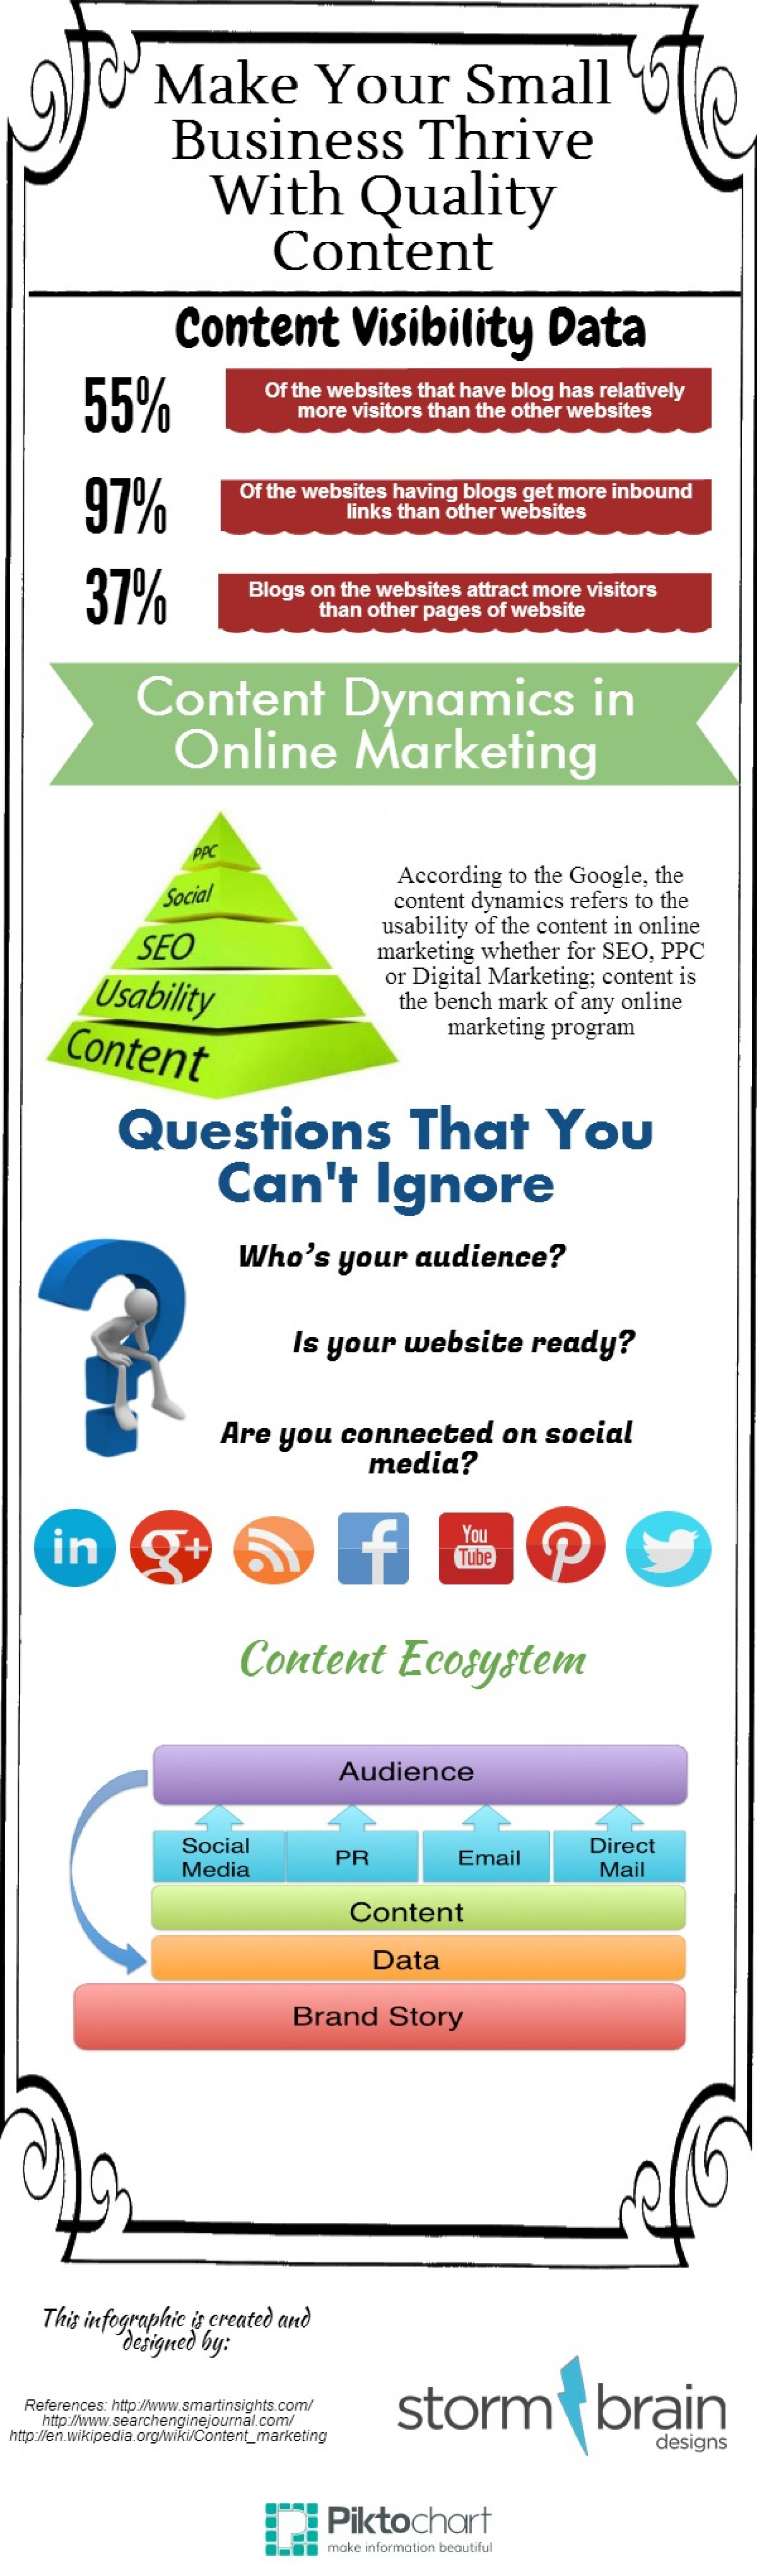 Make Your Small Business Thrive With Quality Content Infographic